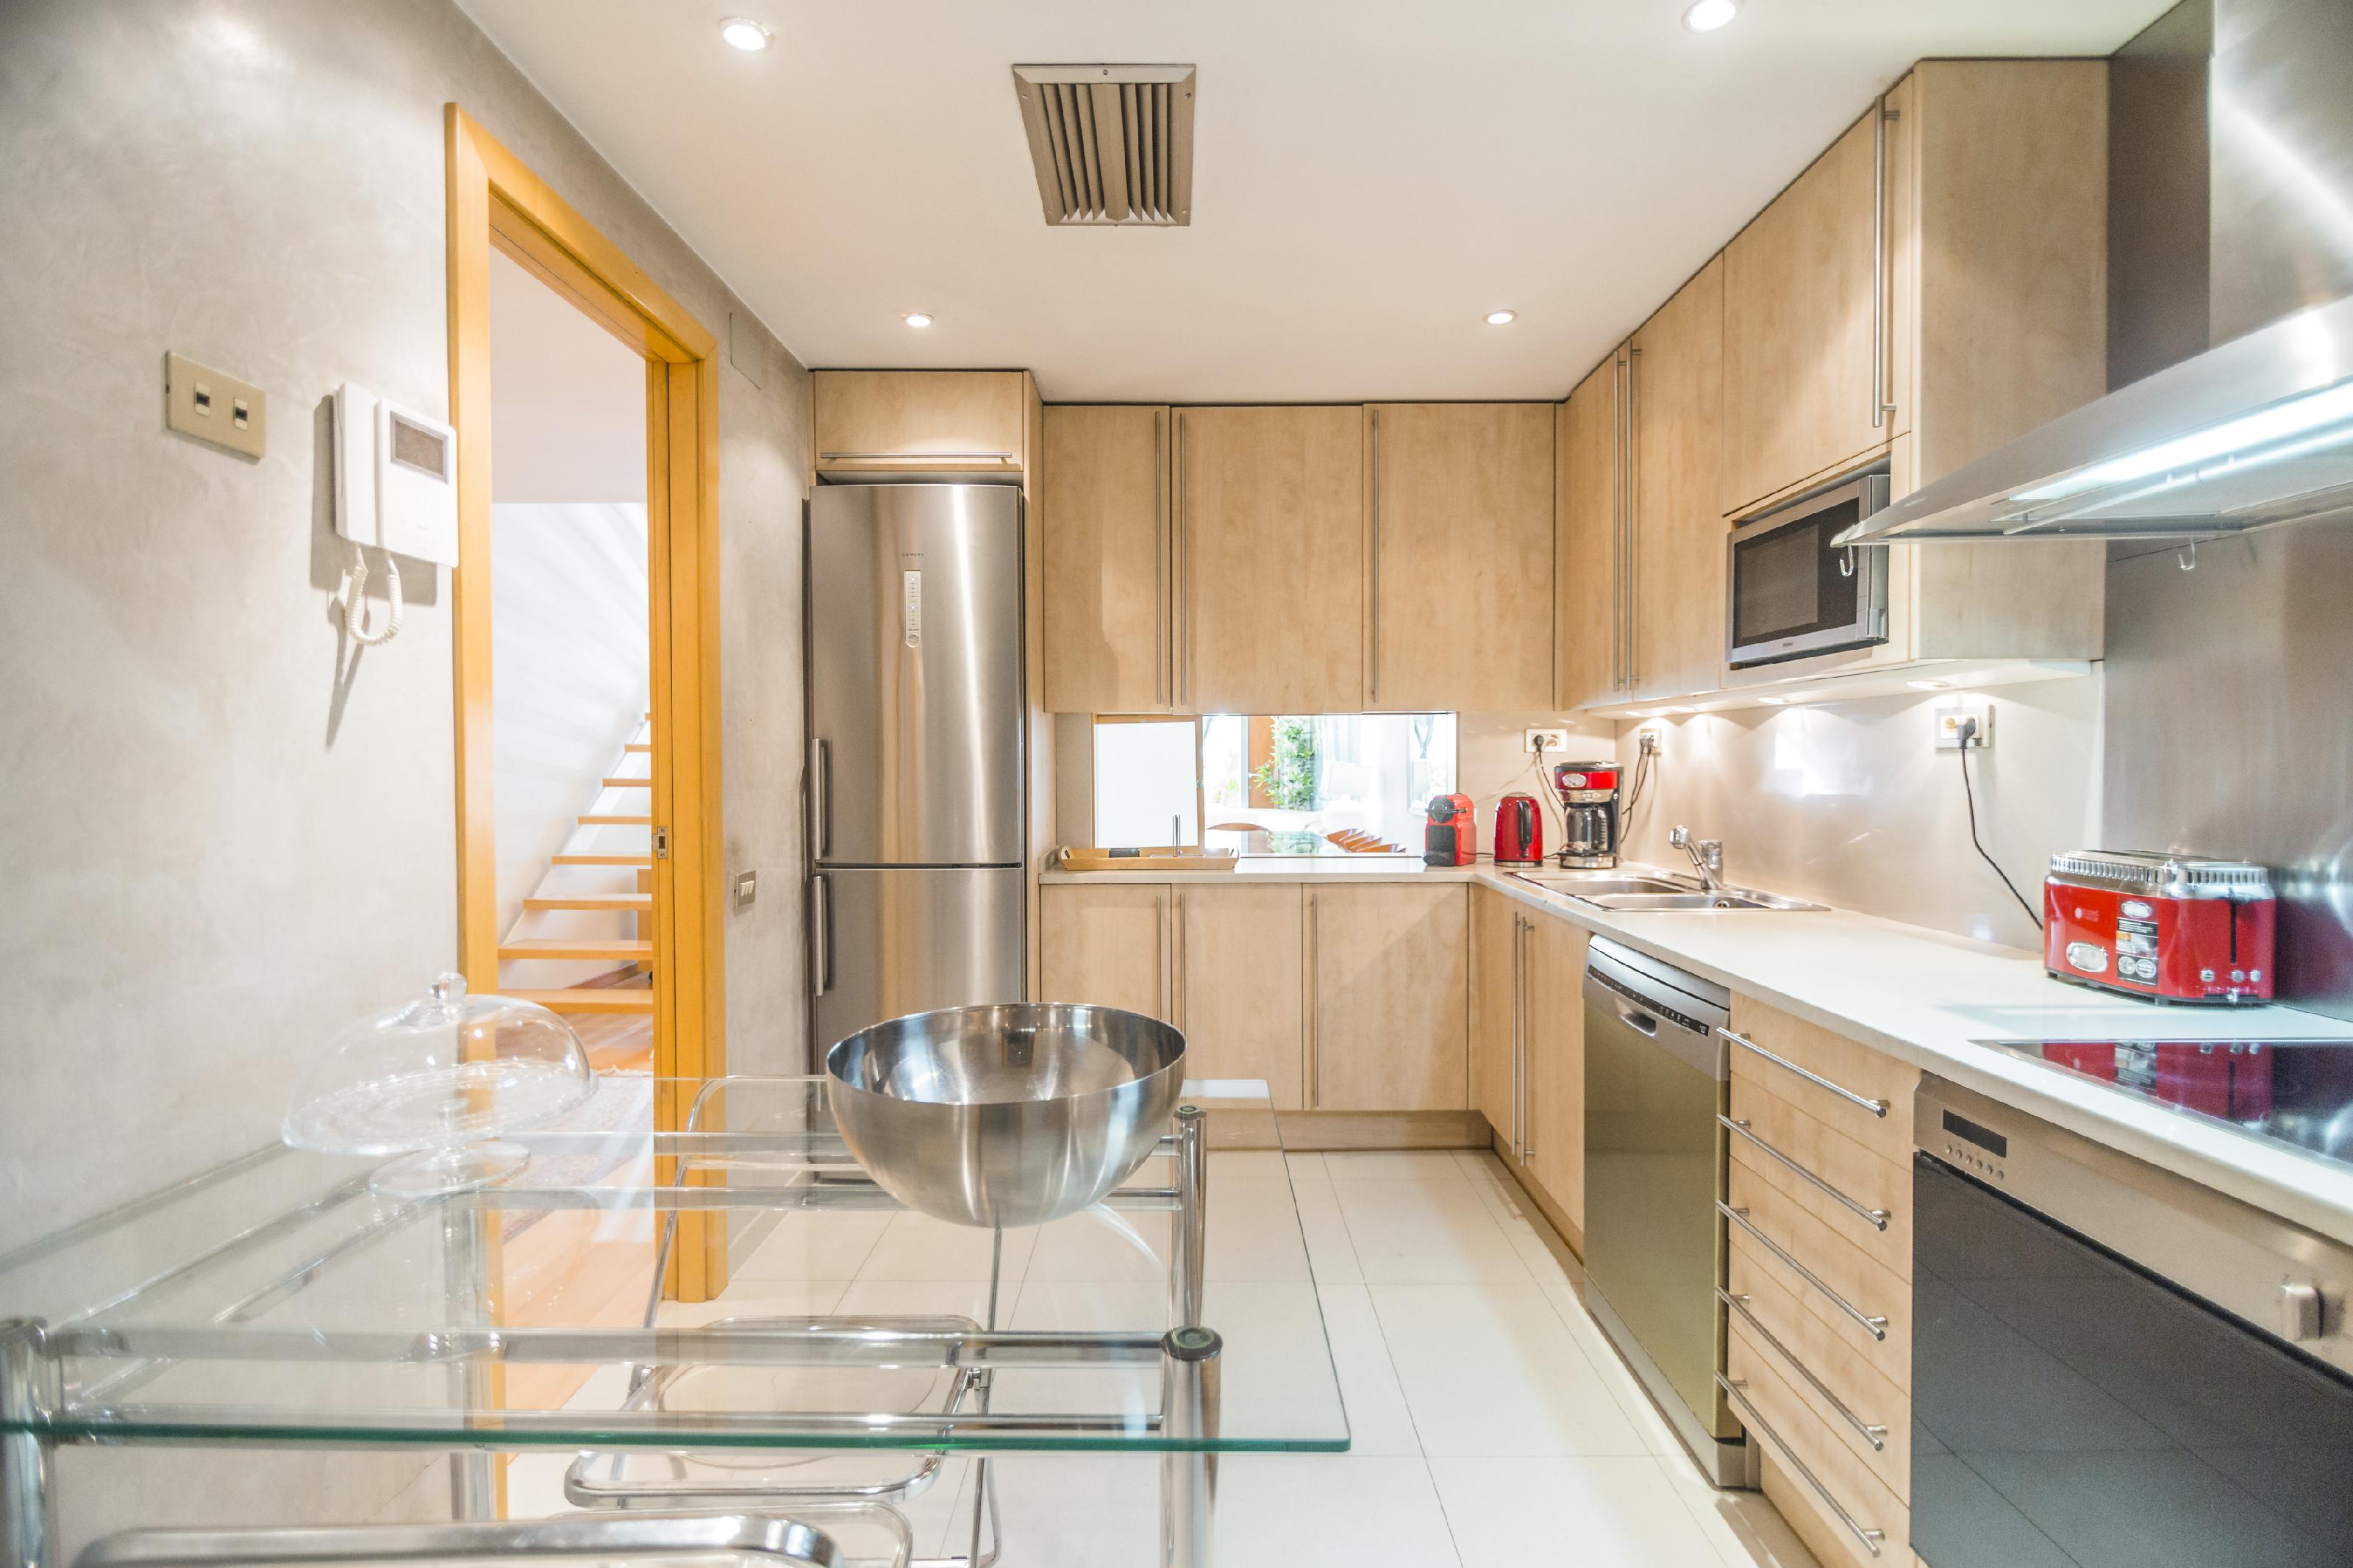 109651 Apartment for sale in Eixample, Dreta Eixample 6